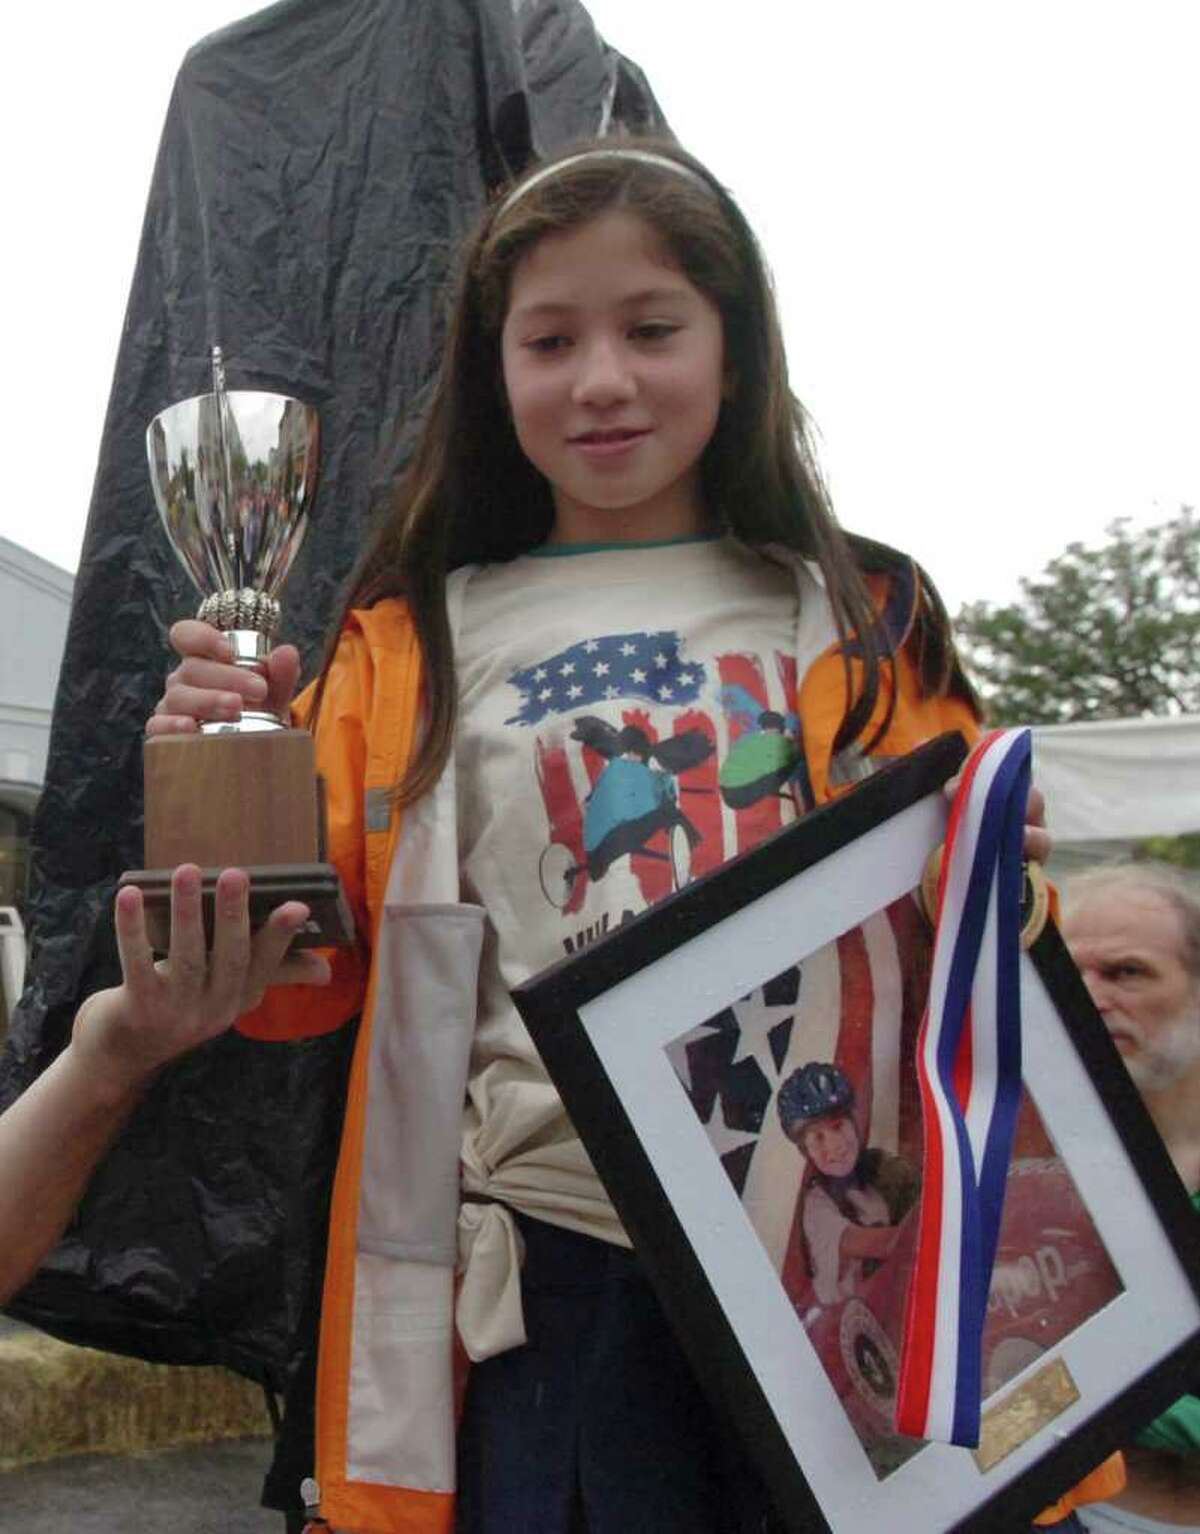 Elena Kim, 11, took second place at the Soap Box Derby, on Sunday, Sept. 12, 2010.